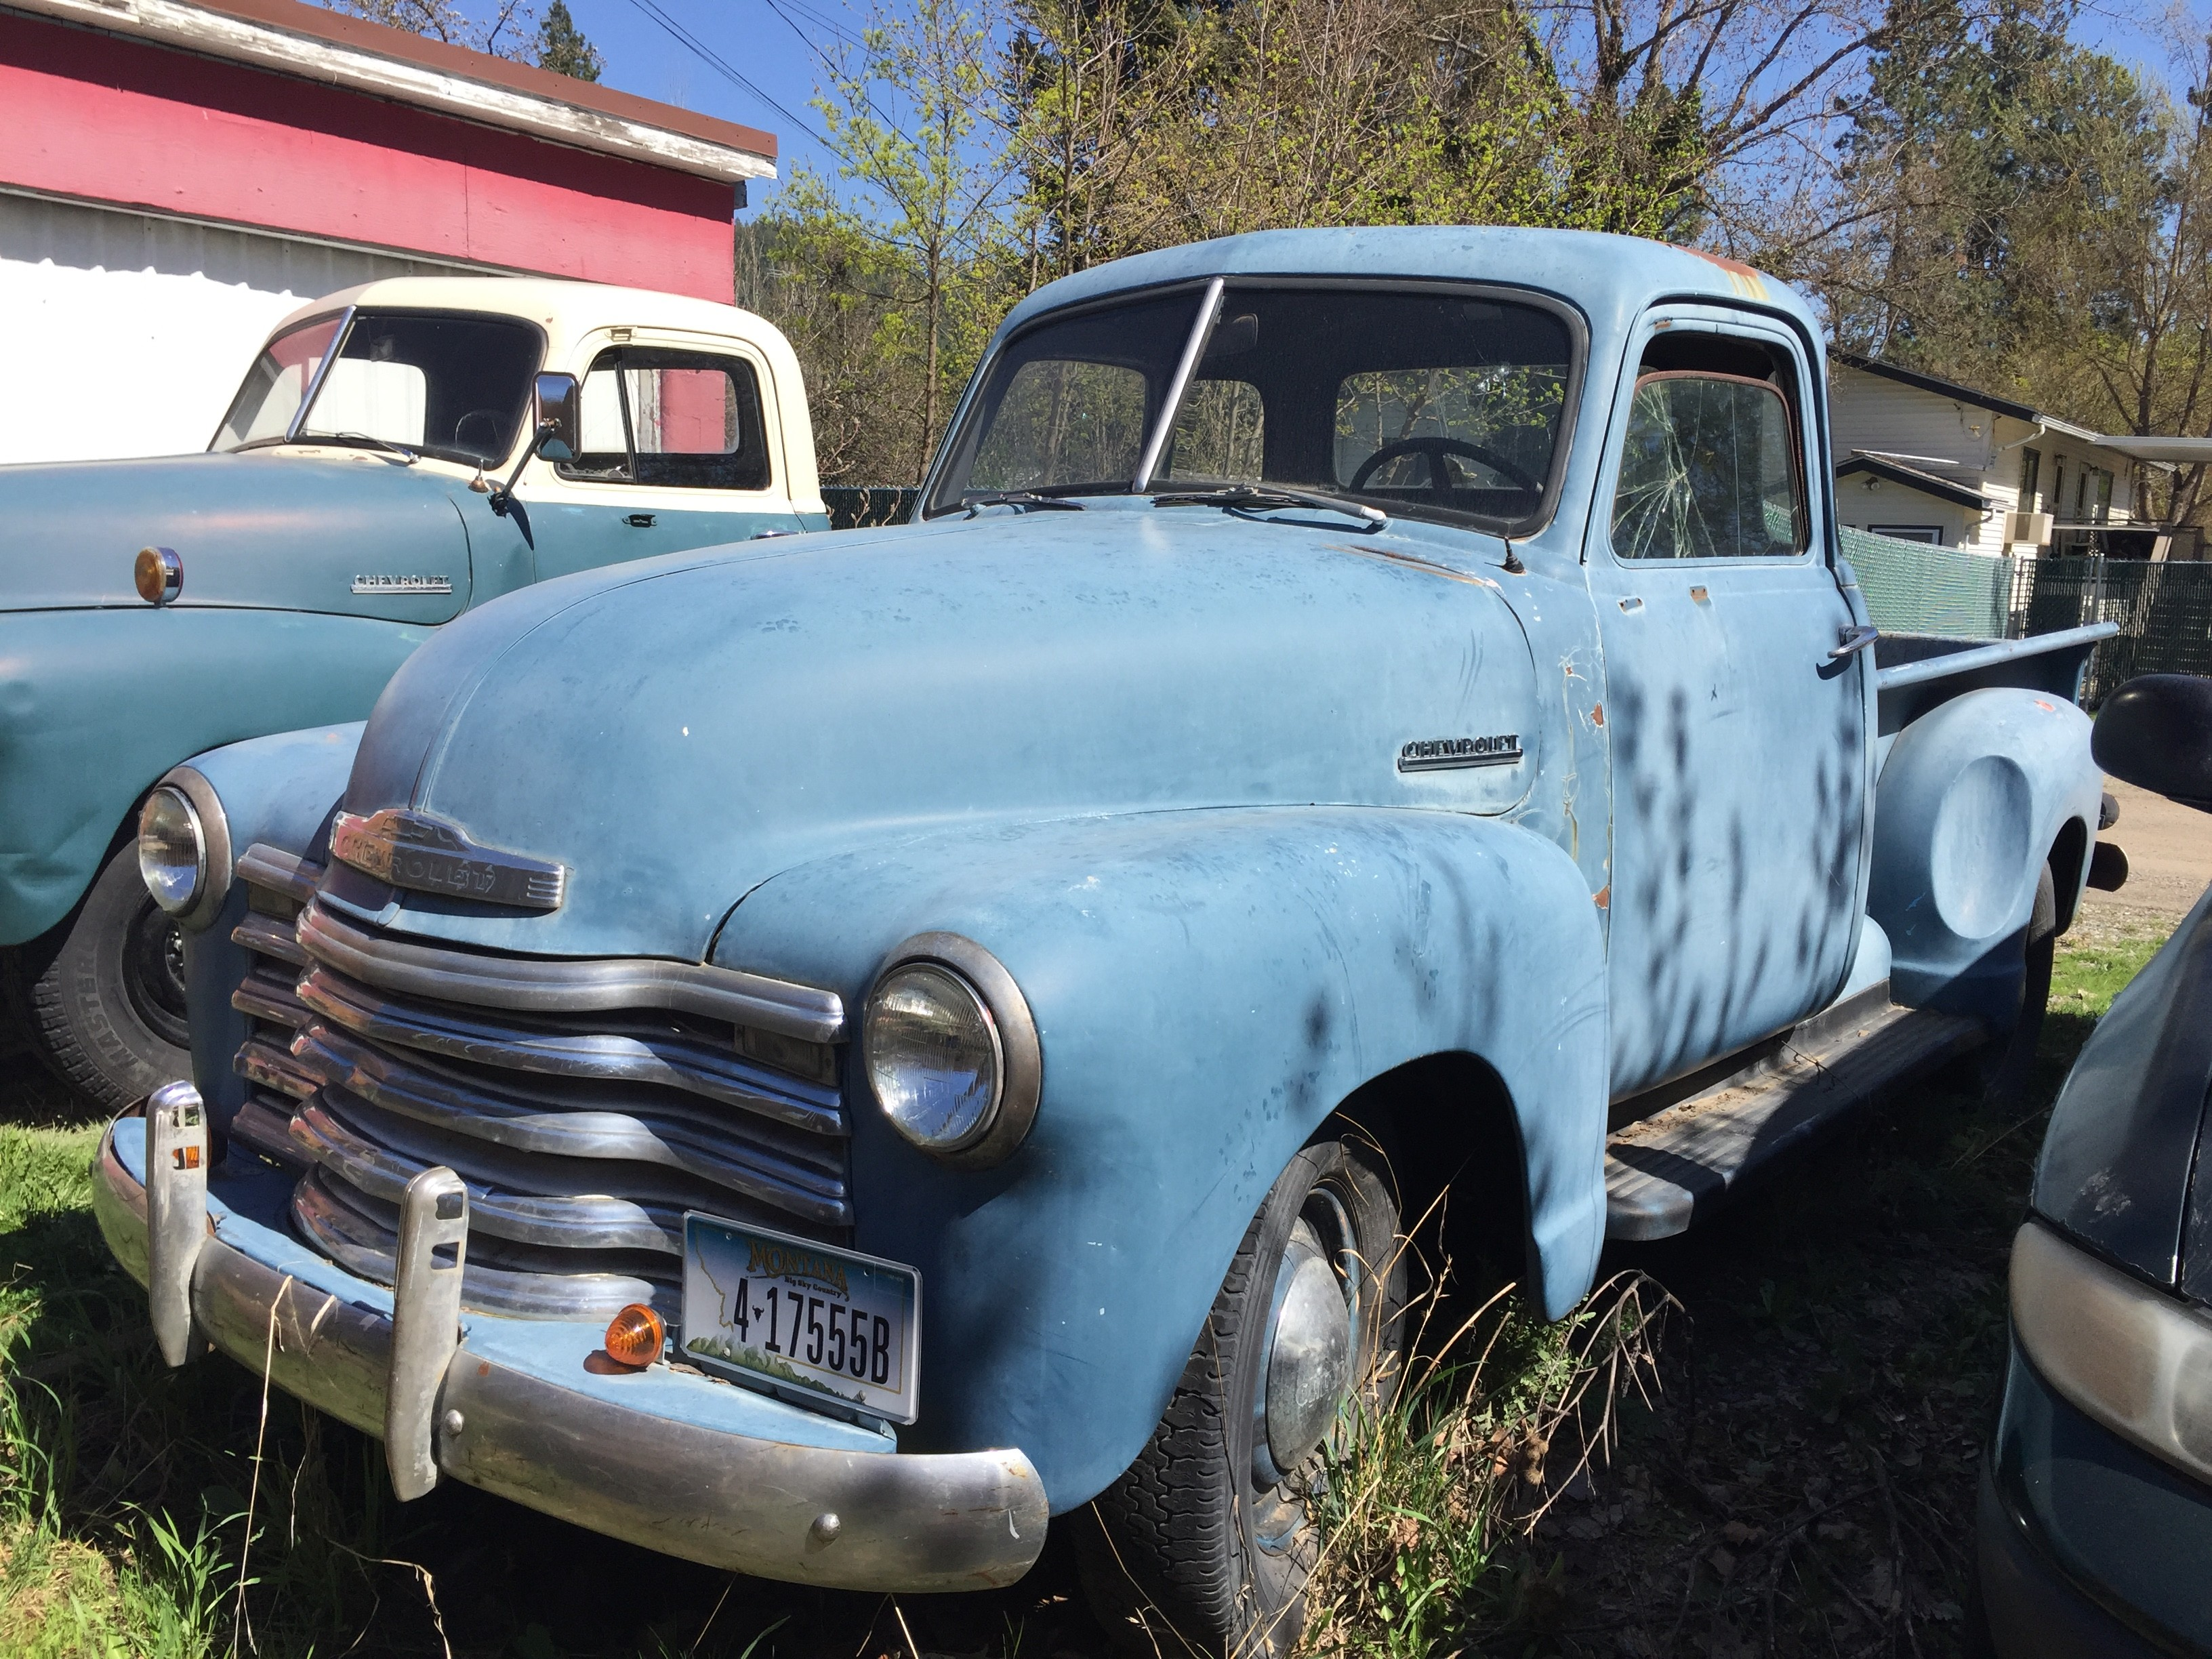 1953 Chevy 5 window pickup project has plenty of potential, if the price is right.